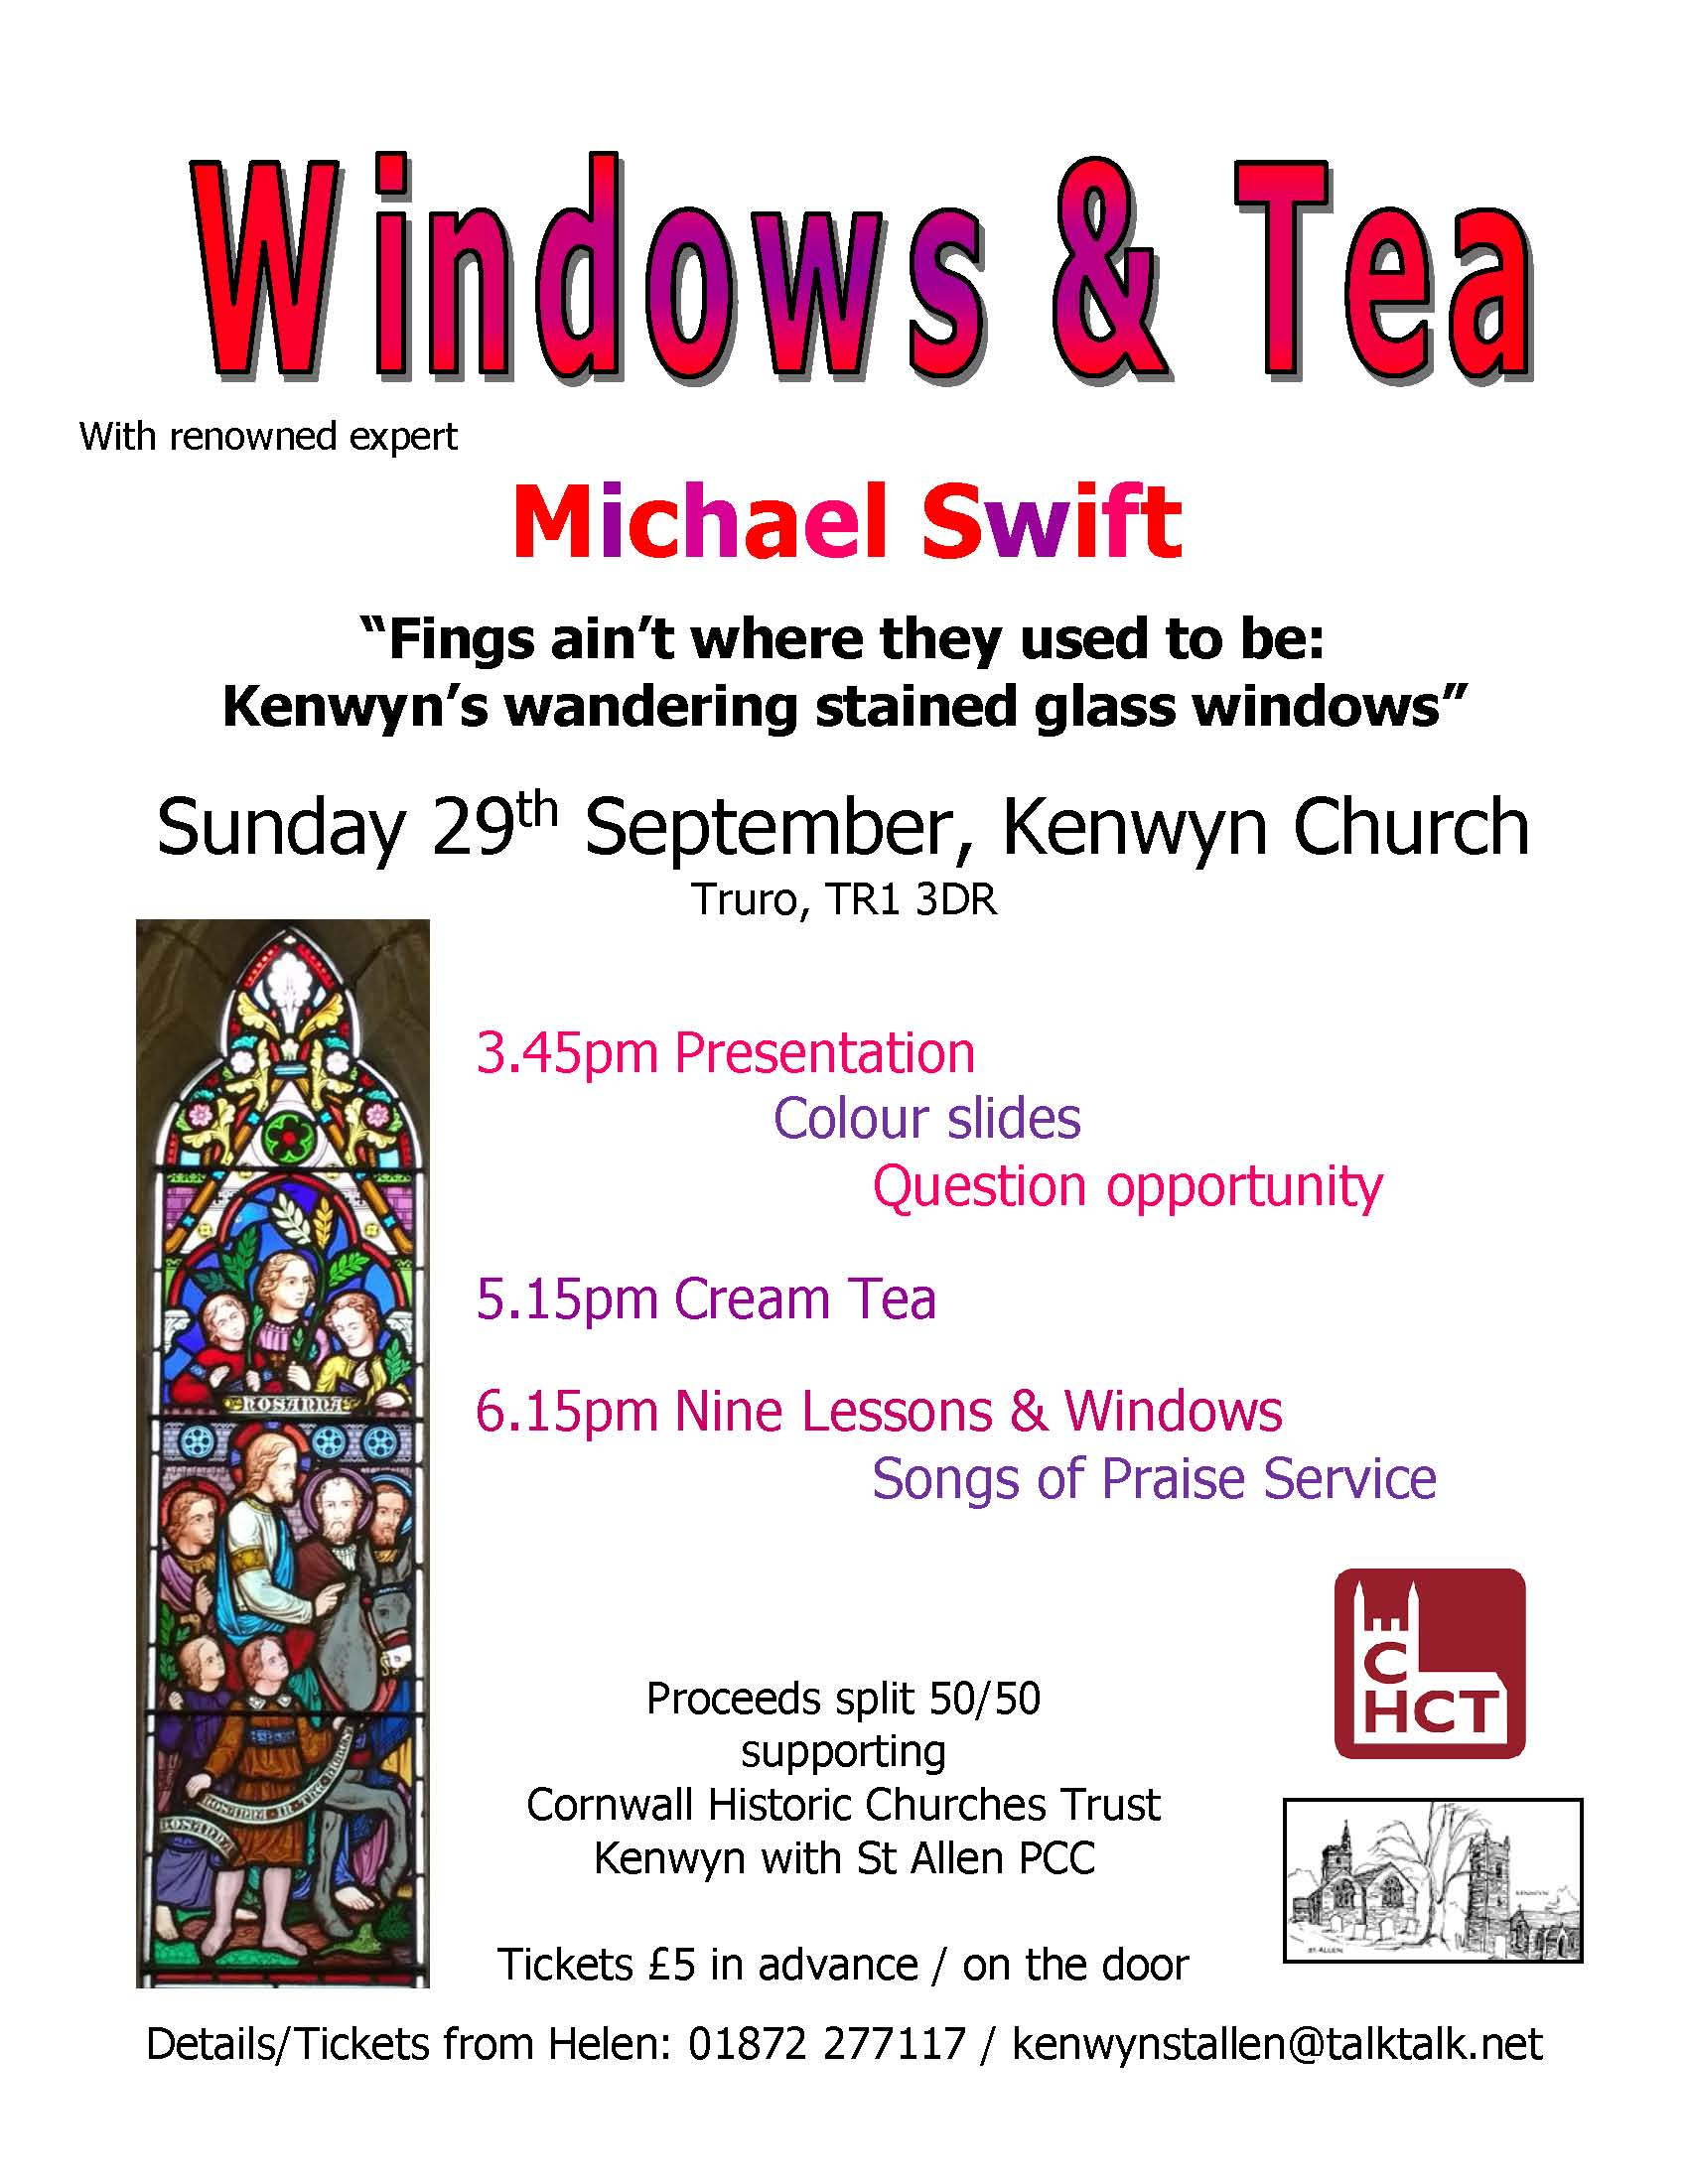 Windows and Tea with renowned expert Michael Swift - Truro Diocese